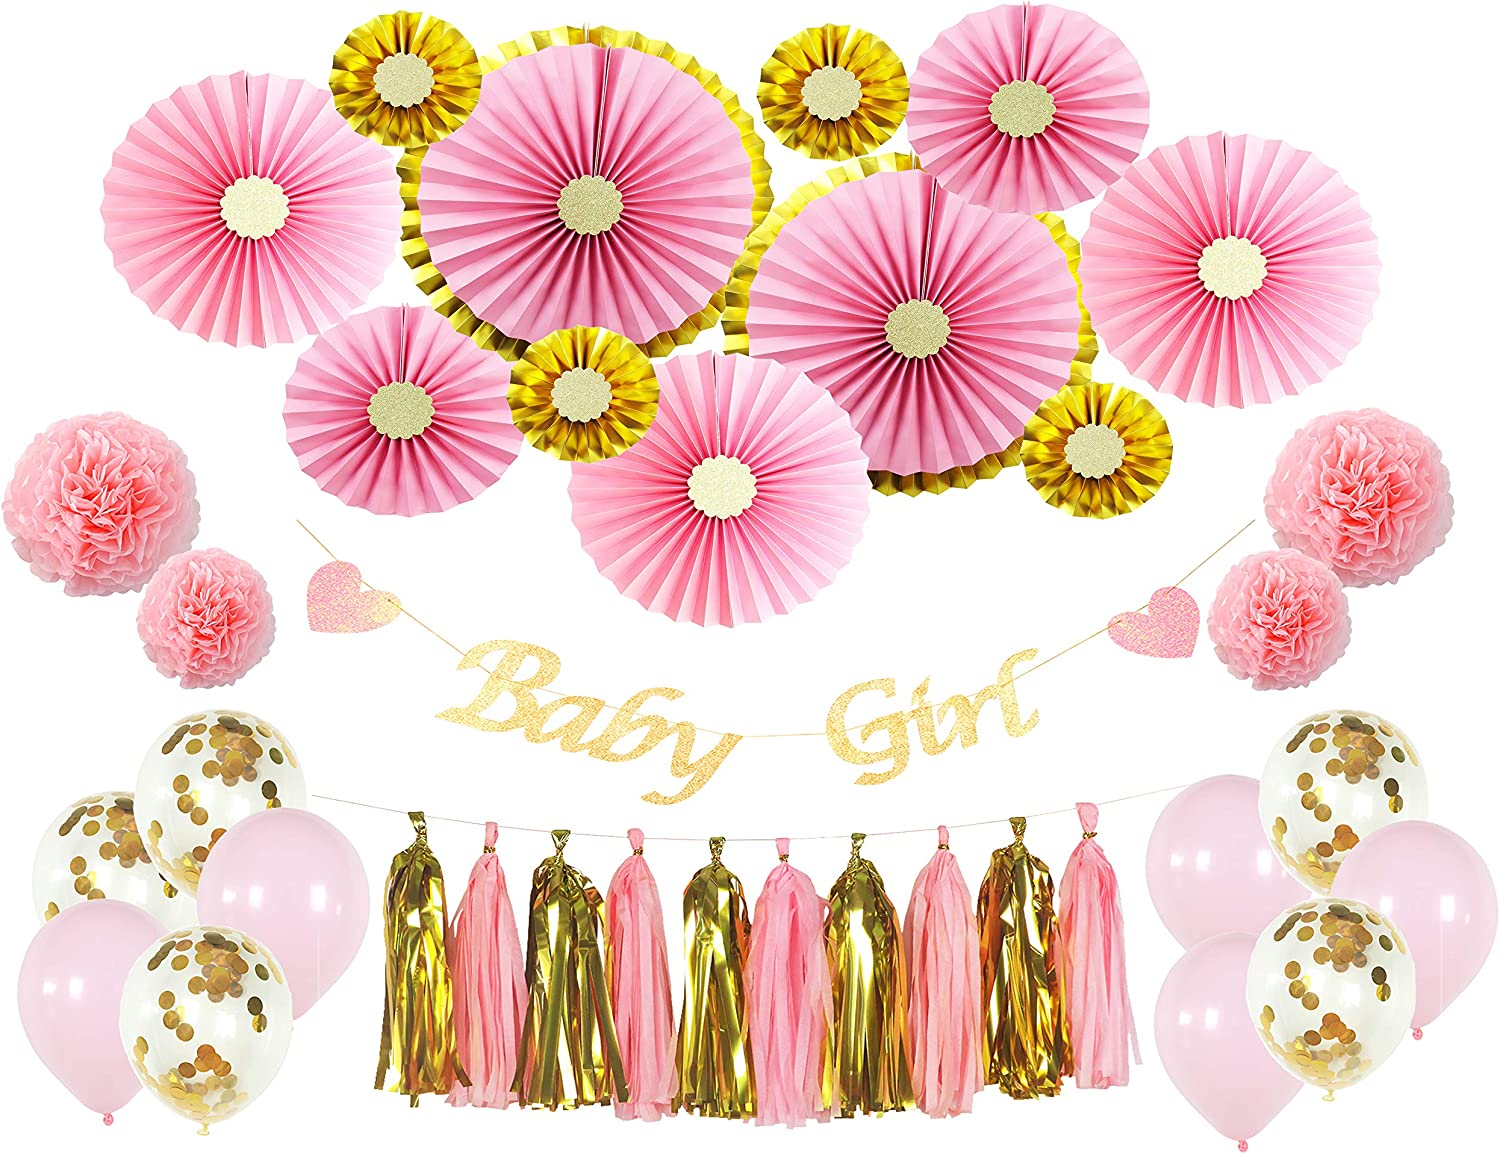 Premium Baby Shower Decorations for Girl, 38 Pieces Pink and Gold Baby Shower Decorations, Princess Baby Shower Décor, Girl Baby Shower, Pink Gold Party Decorations, Pink Paper Fans with Gold